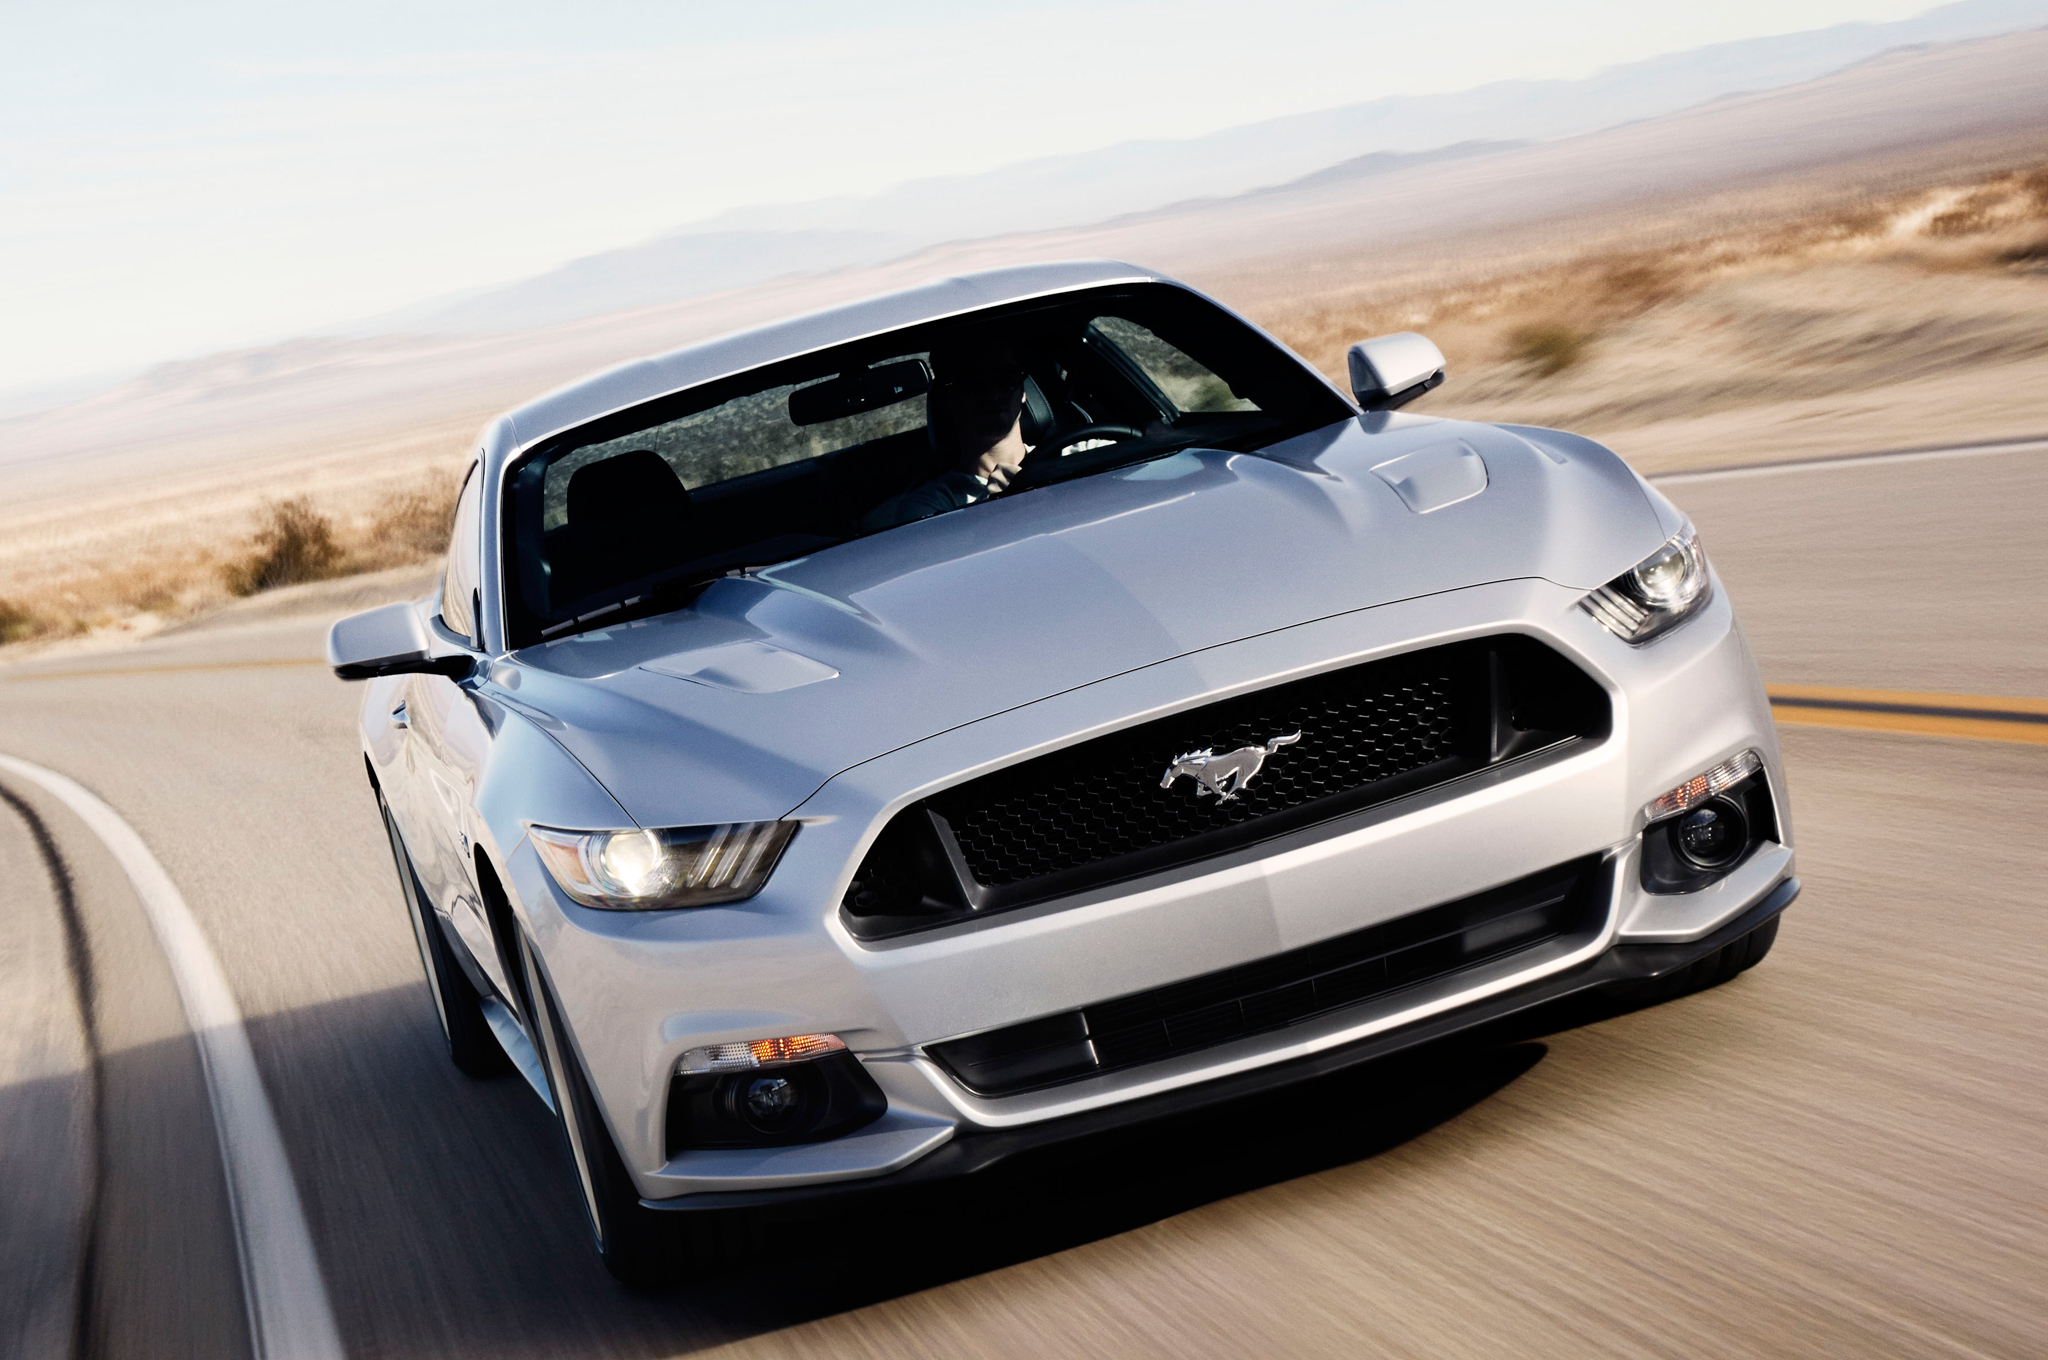 2015 ford mustang gt premium everything that matters is here ford. Black Bedroom Furniture Sets. Home Design Ideas